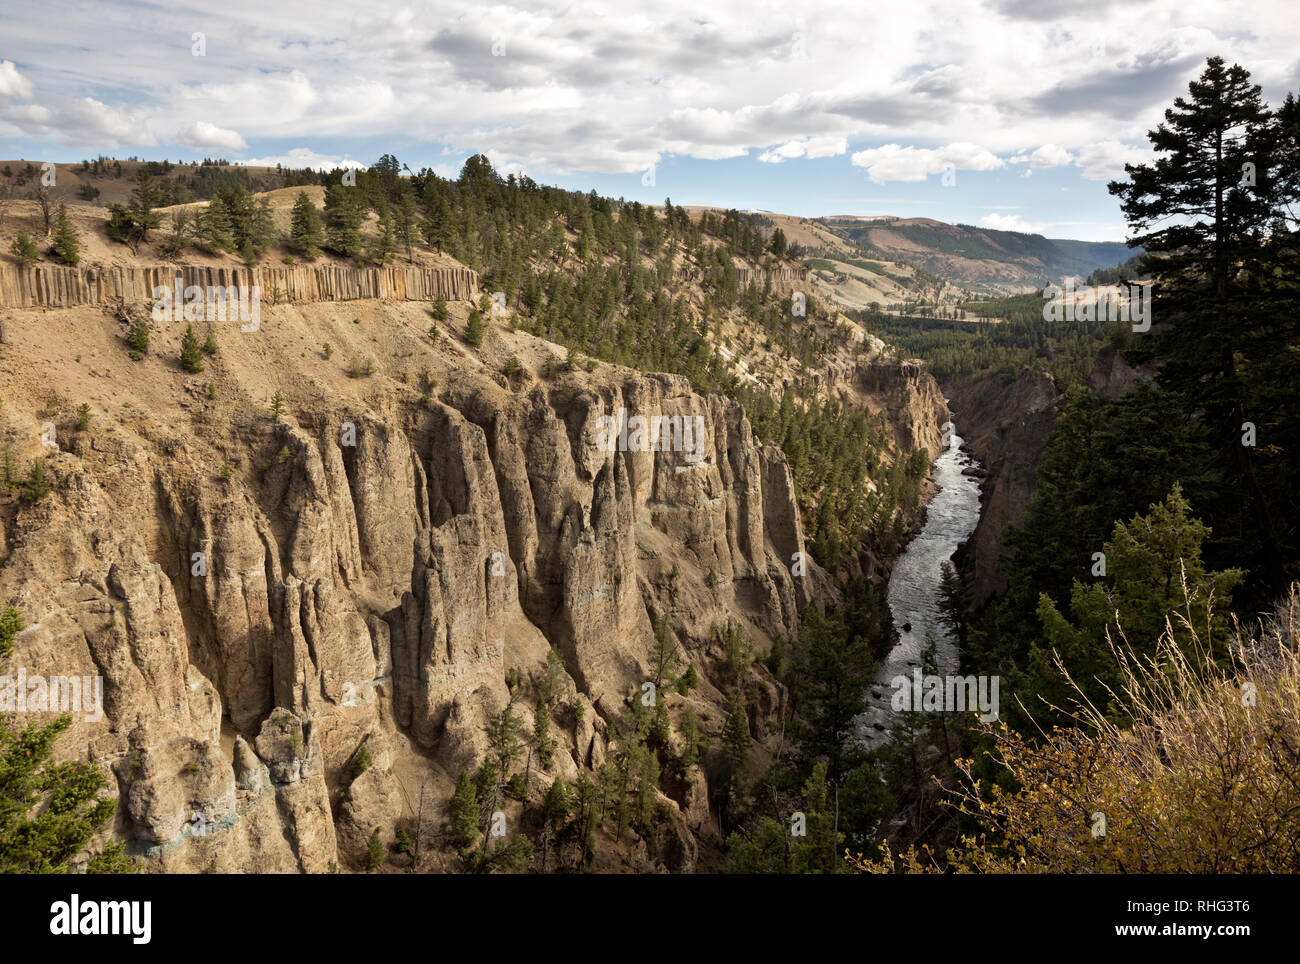 Basaltic columns and spires form the walls of the Canyon of the Yellowstone River viewed from the Calcite Springs Overlook in Yellowstone Natl. Park. - Stock Image